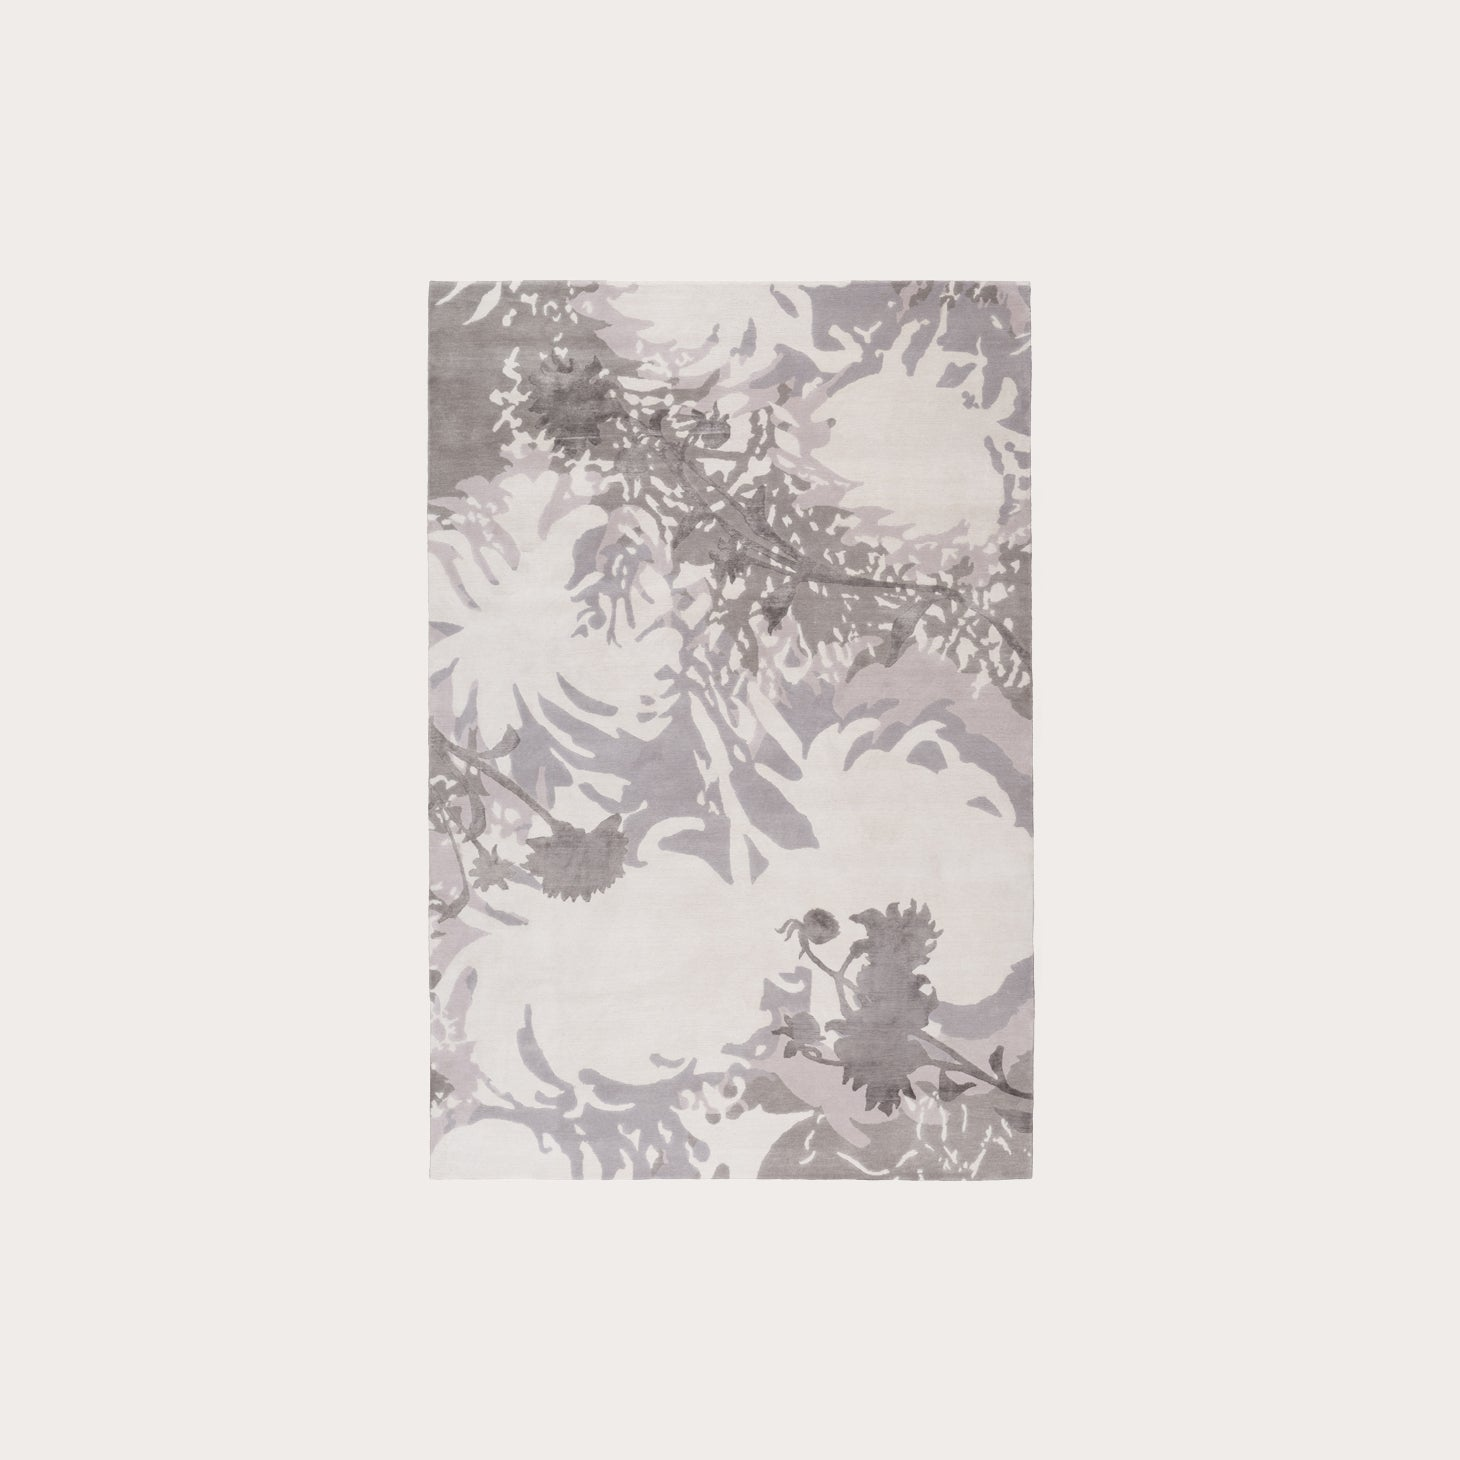 Dahlia Floor Coverings Alexandra Champalimaud Designer Furniture Sku: 391-150-11274